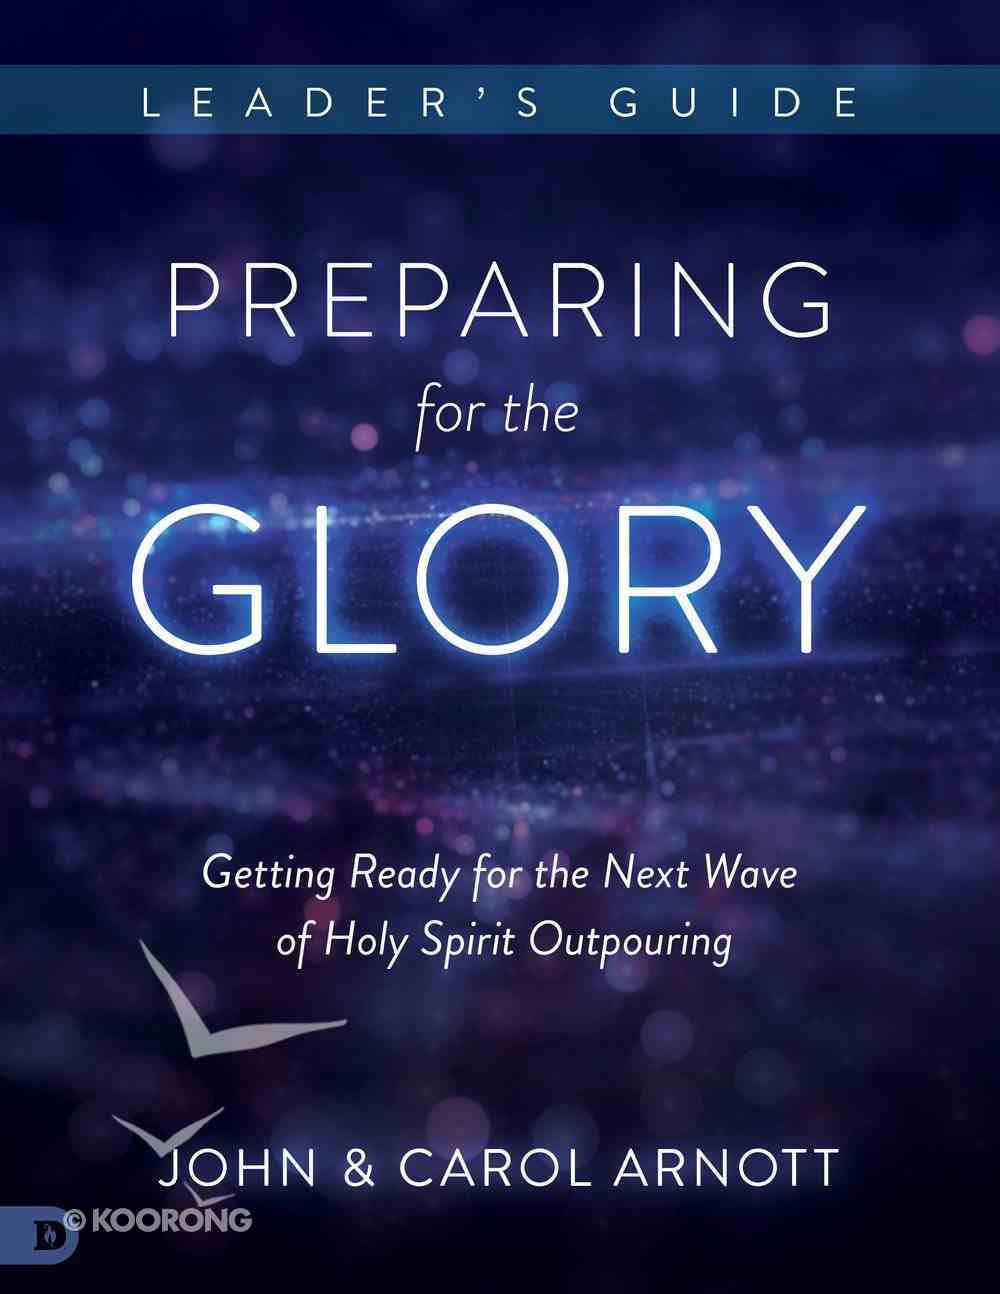 Preparing For the Glory: Getting Ready For the Next Wave of Holy Spirit Outpouring (Leader's Guide) Paperback